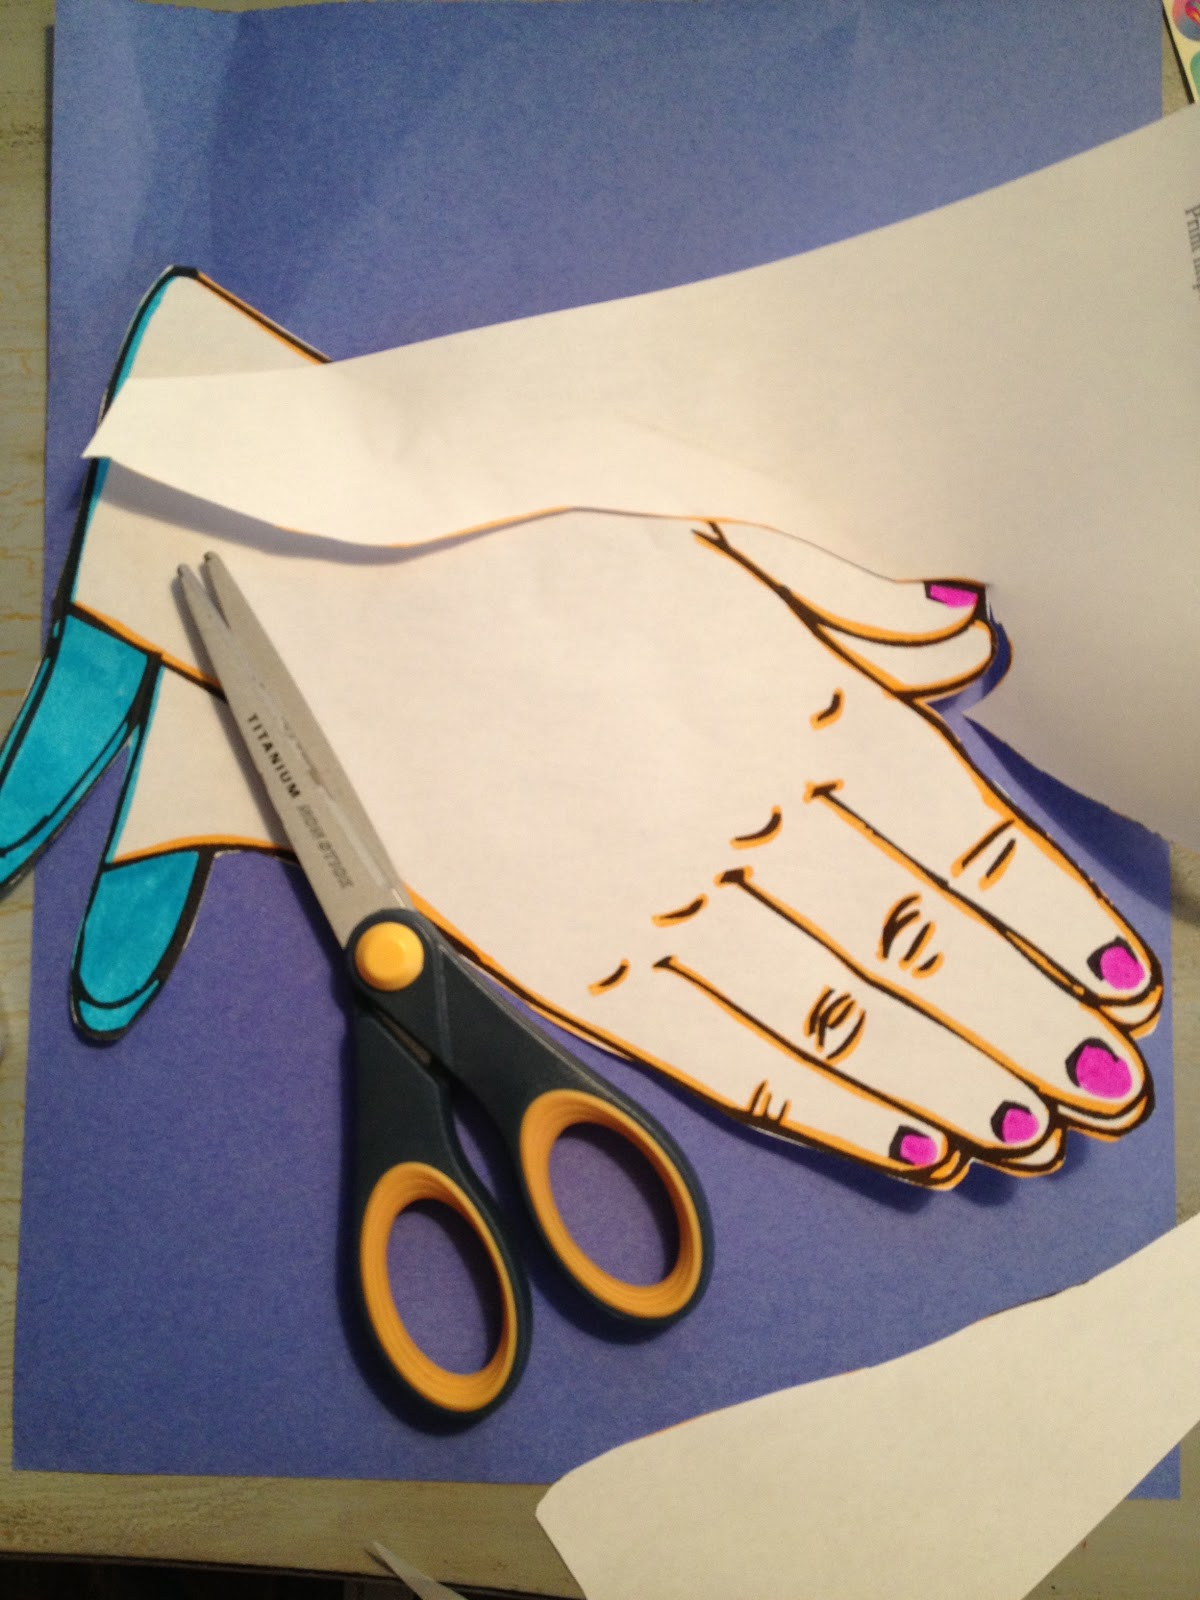 Let your little one practice their sewing skills with these easy felt projects they are sure to love! Confessions Of A Sunday School Teacher Prayer Reminder Poster